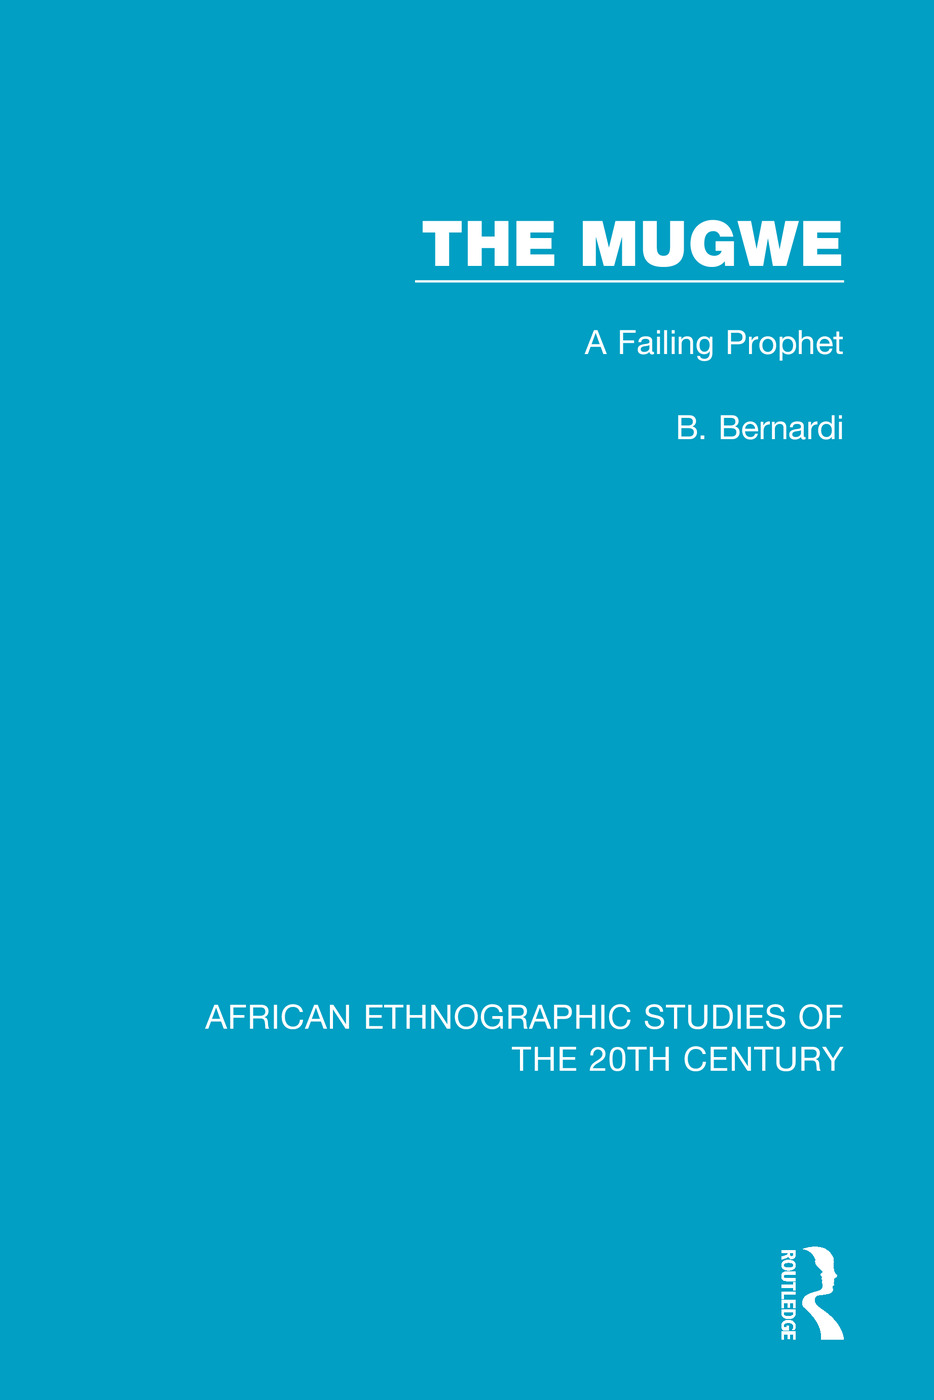 The Mugwe: A Failing Prophet book cover